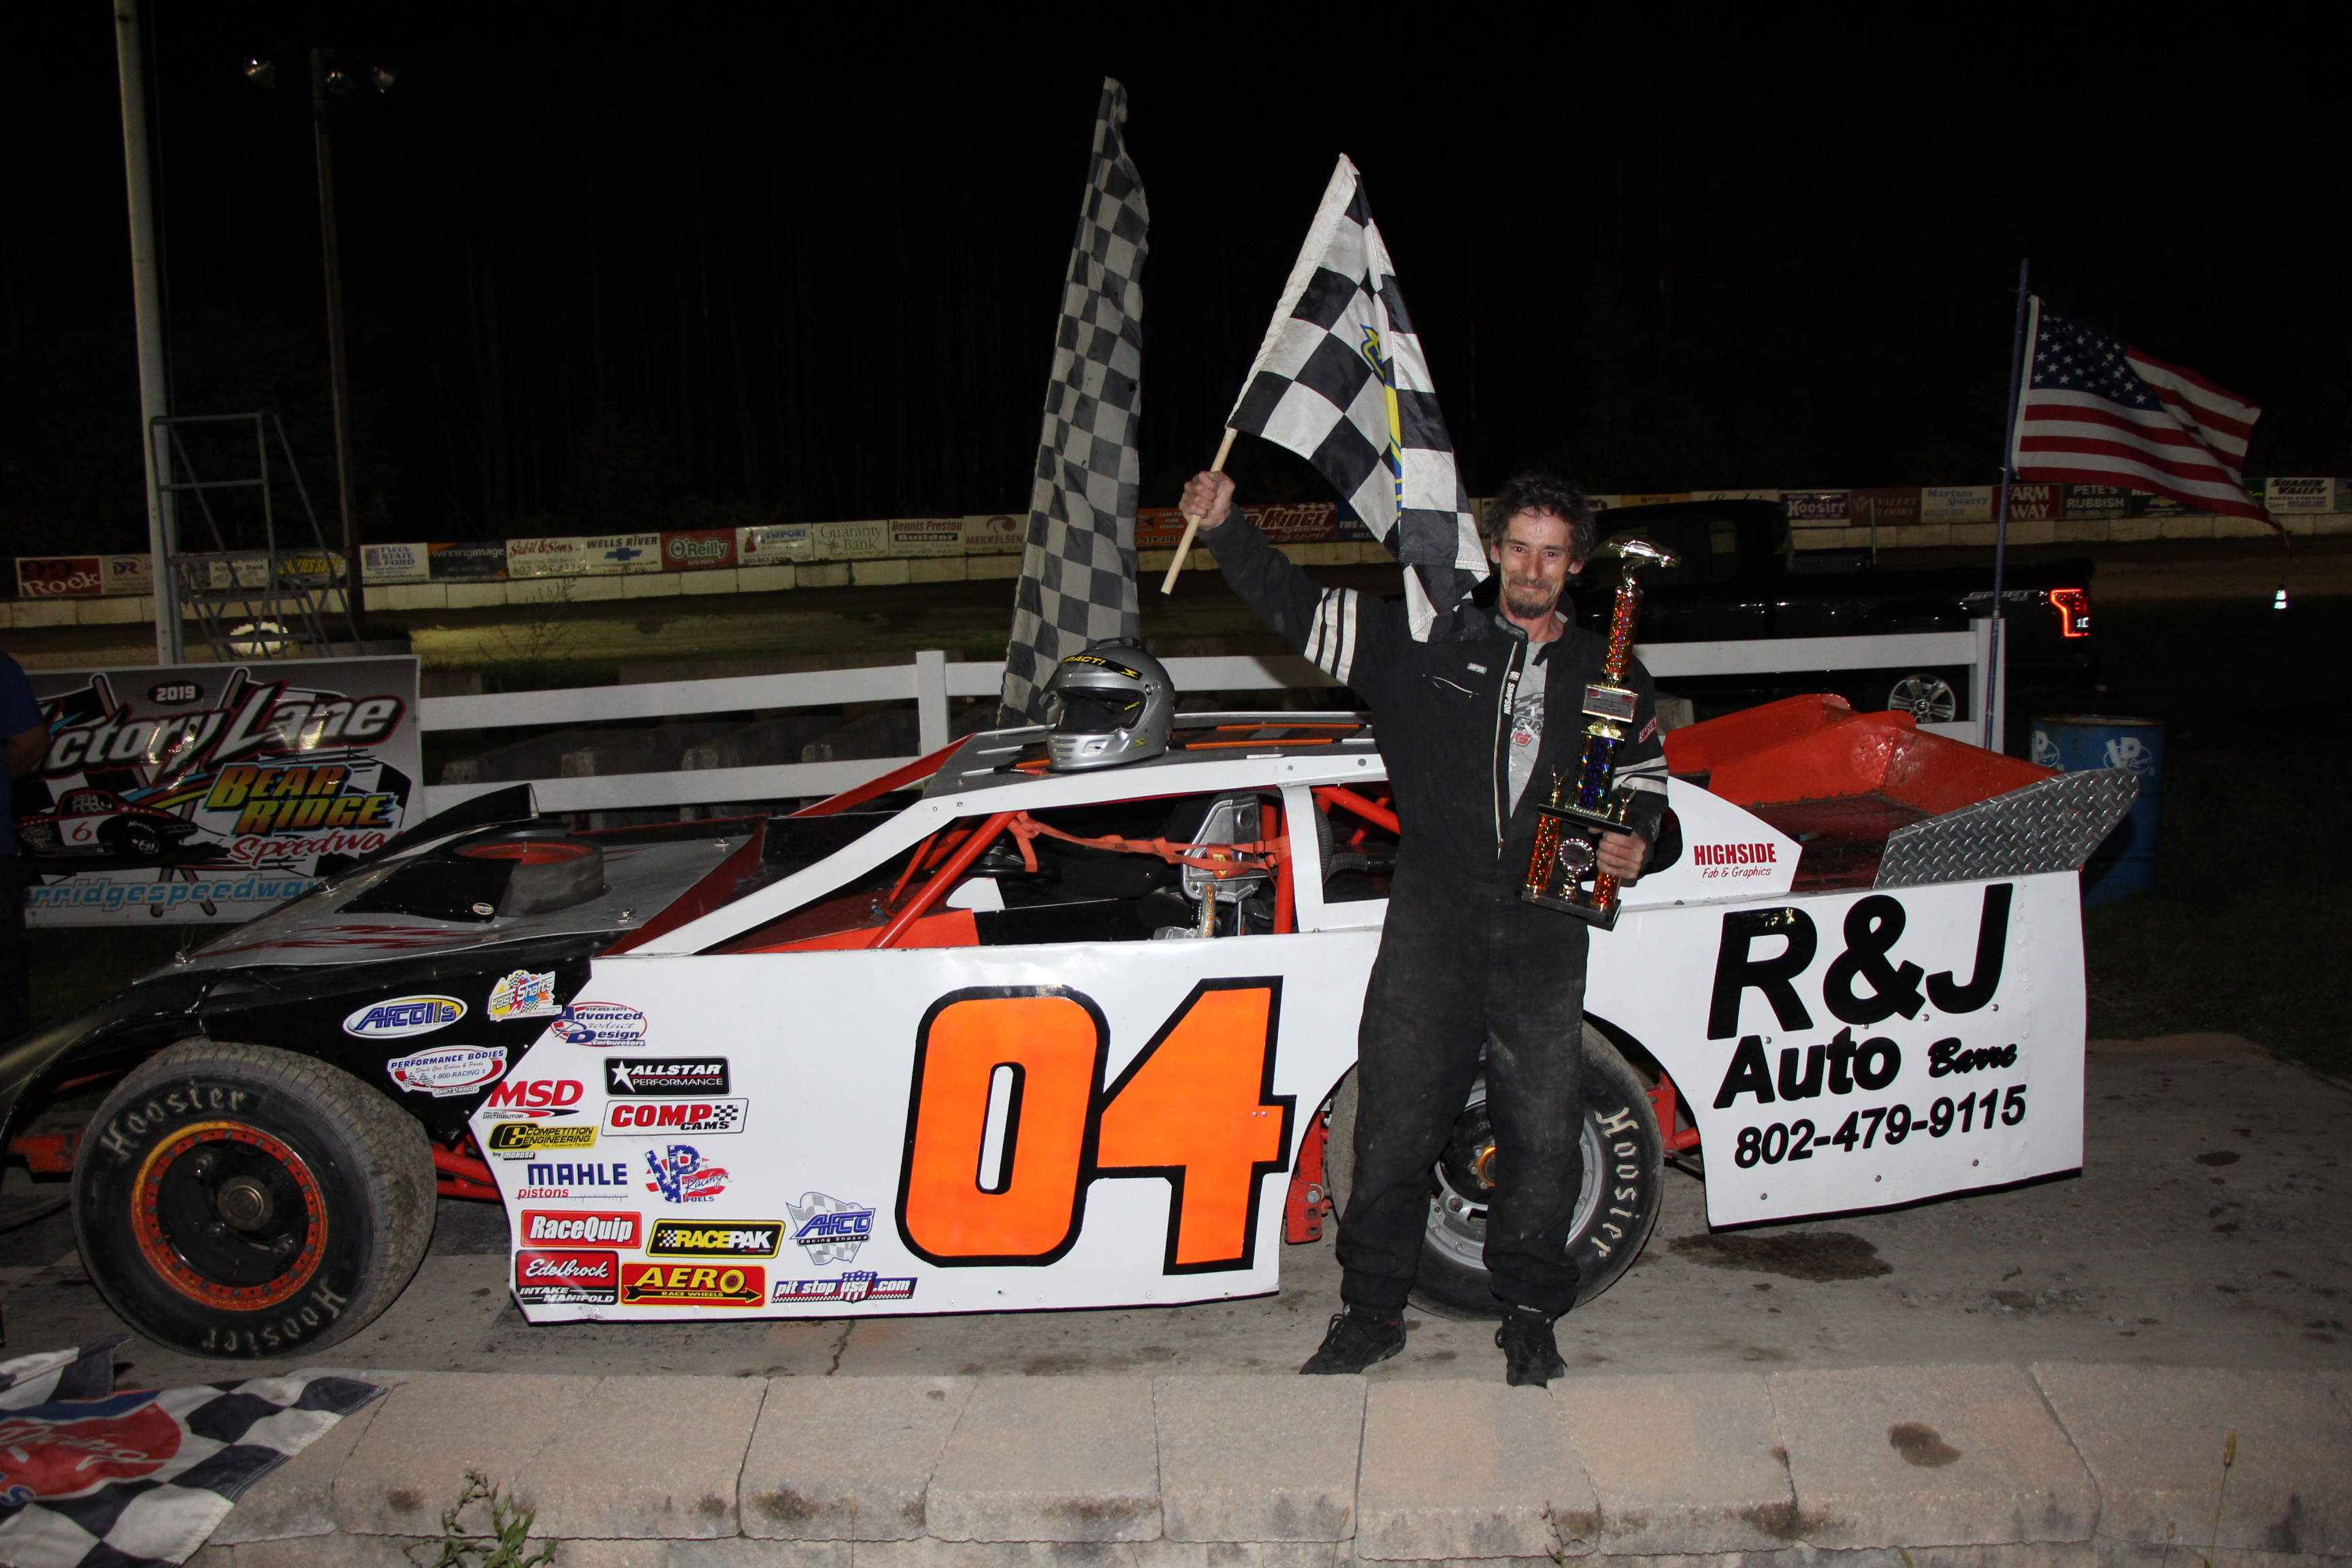 Josh Harrington wins in the Wells River Chevrolet DIRTcar Sportsman Coupes, Jordan Fornwalt gets win #6 in the Sabil & Sons DIRTcar Sportsman Modifieds